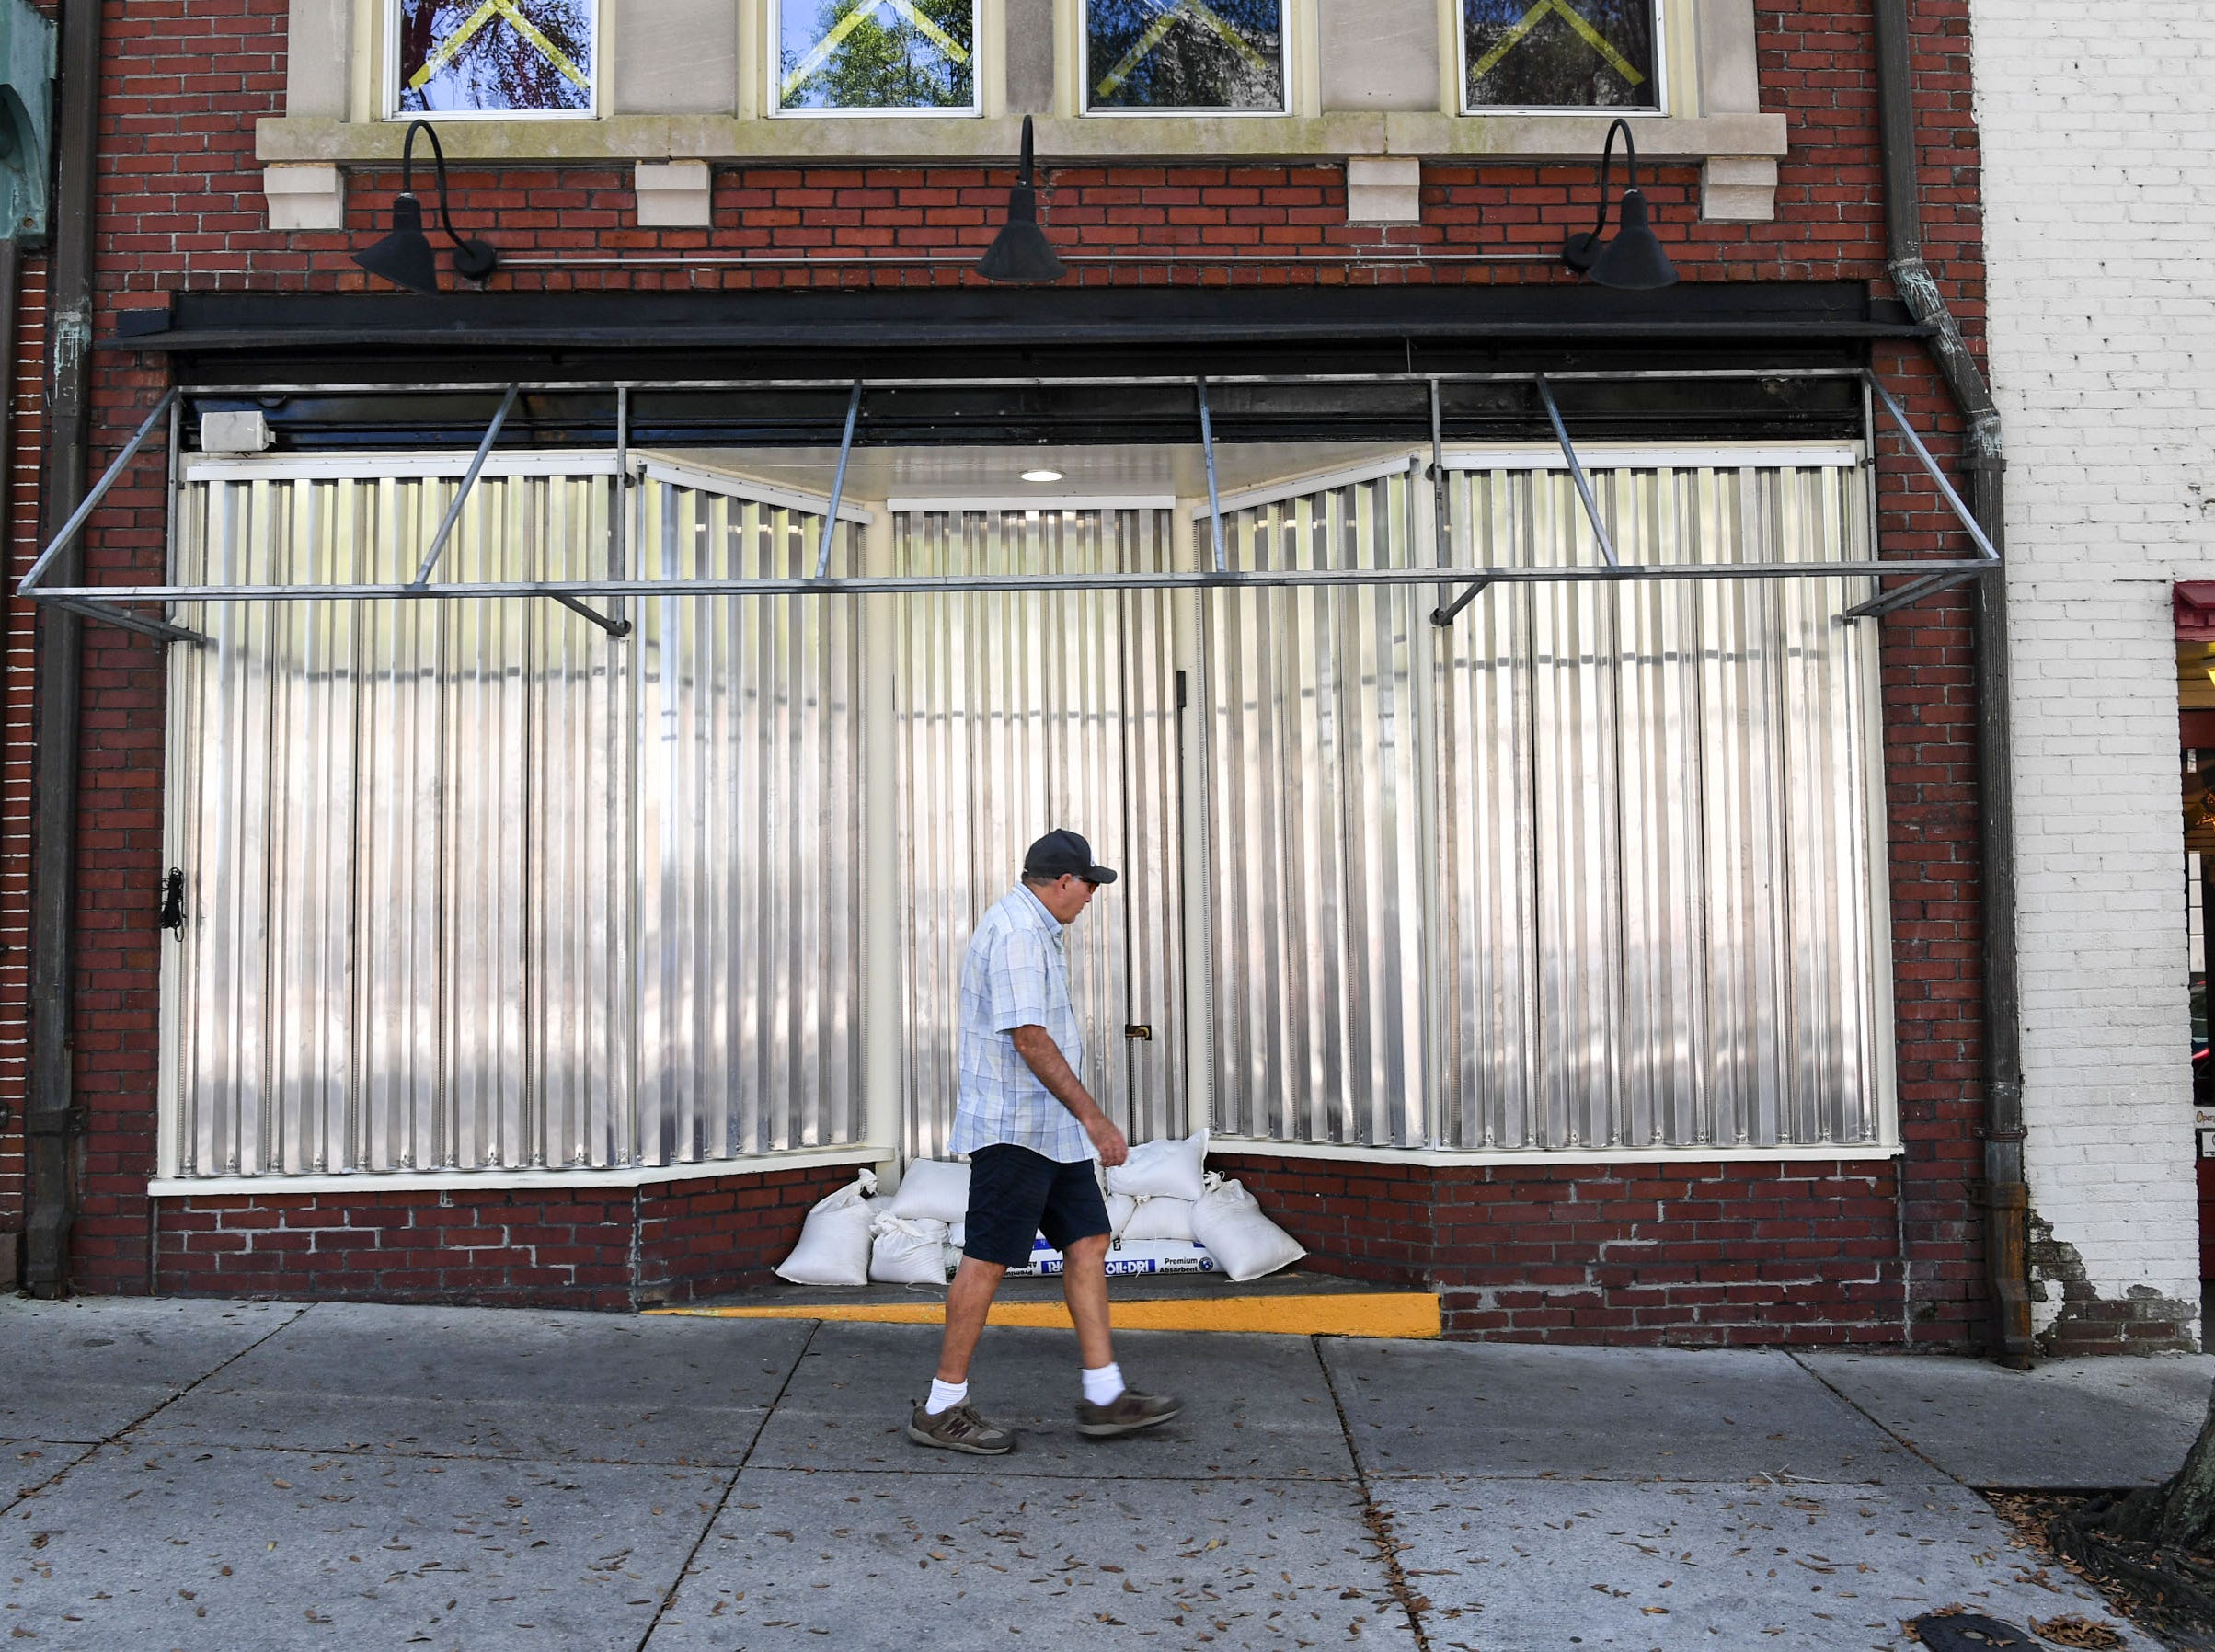 David Lant walks by a restaurant with a metal window protector near the riverfront in Wilmington, North Carolina on Wednesday, September 12, 2018.  (Ken Ruinard / Greenville News / Gannett USA Today Network / 2018 )